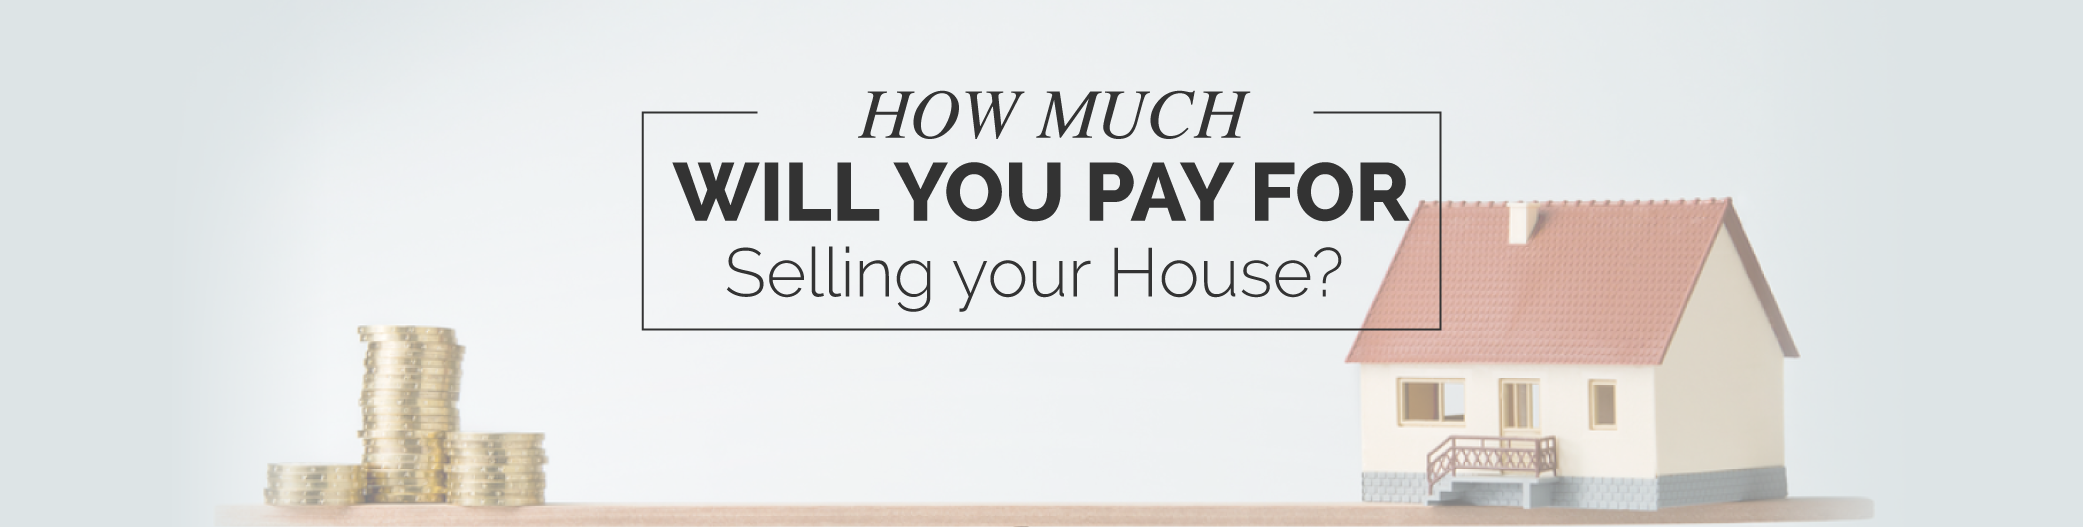 HOW MUCH WILL YOU PAY FOR SELLING YOUR HOUSE